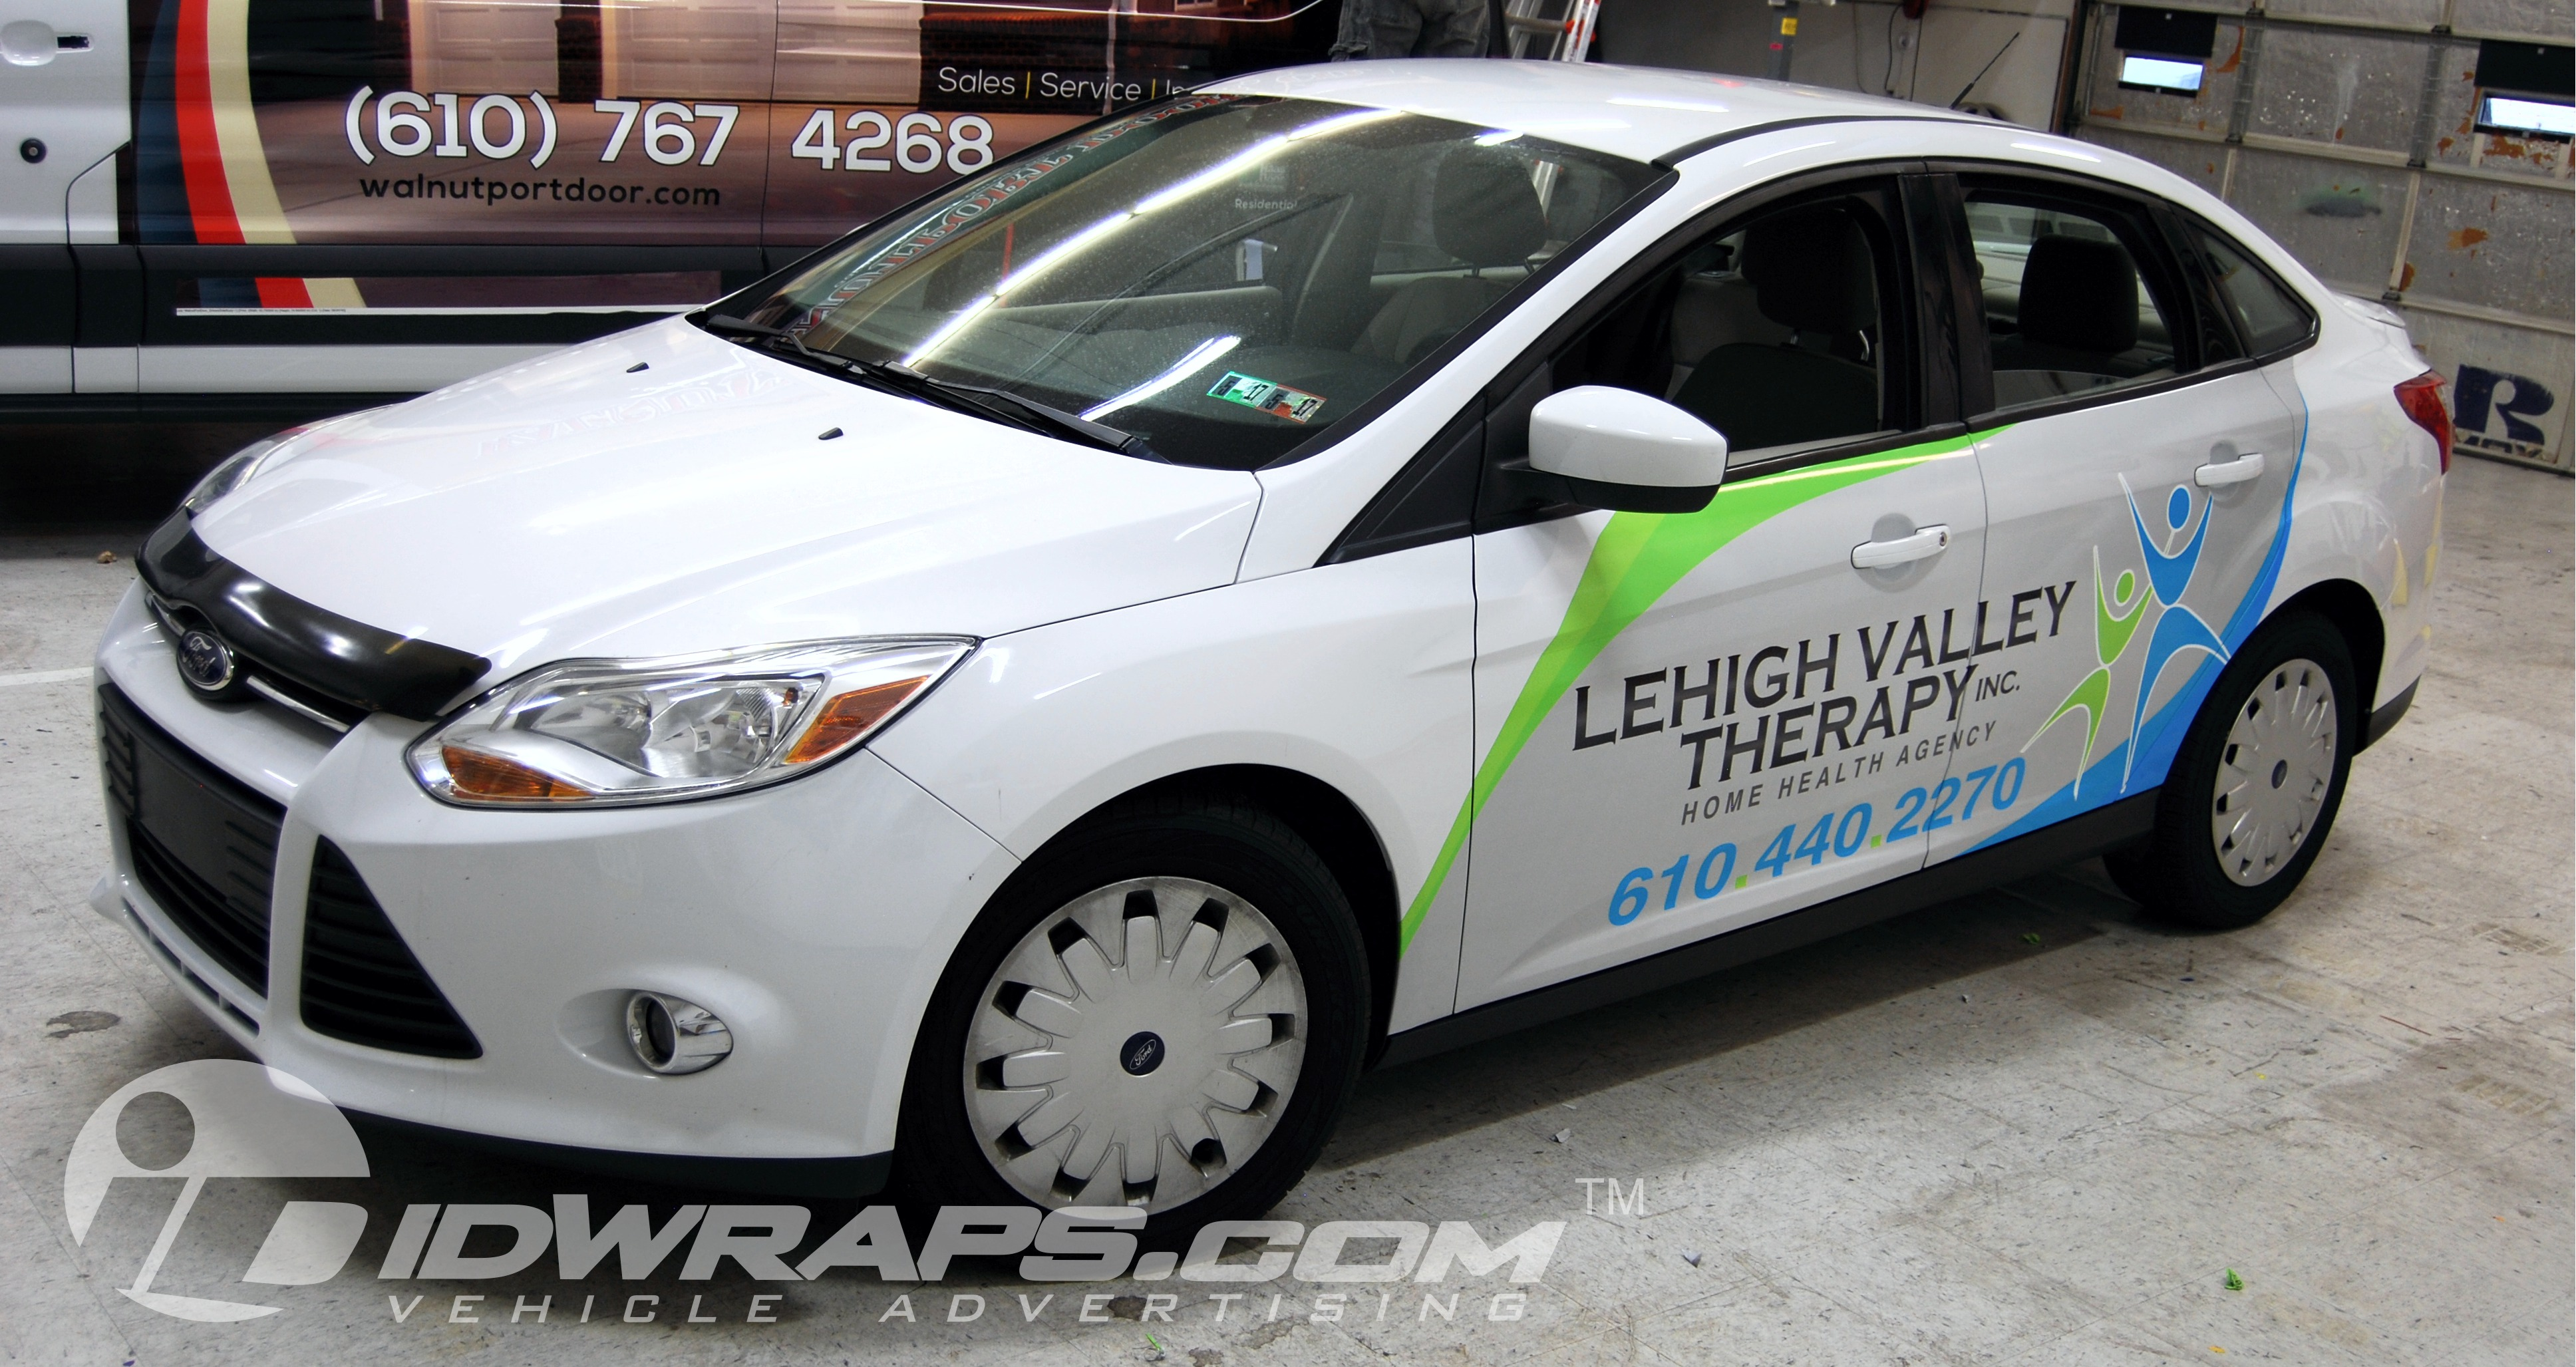 Home Care Wrap Lehigh Valley Therapy Ford Focus Partial 3M Vinyl Graphic